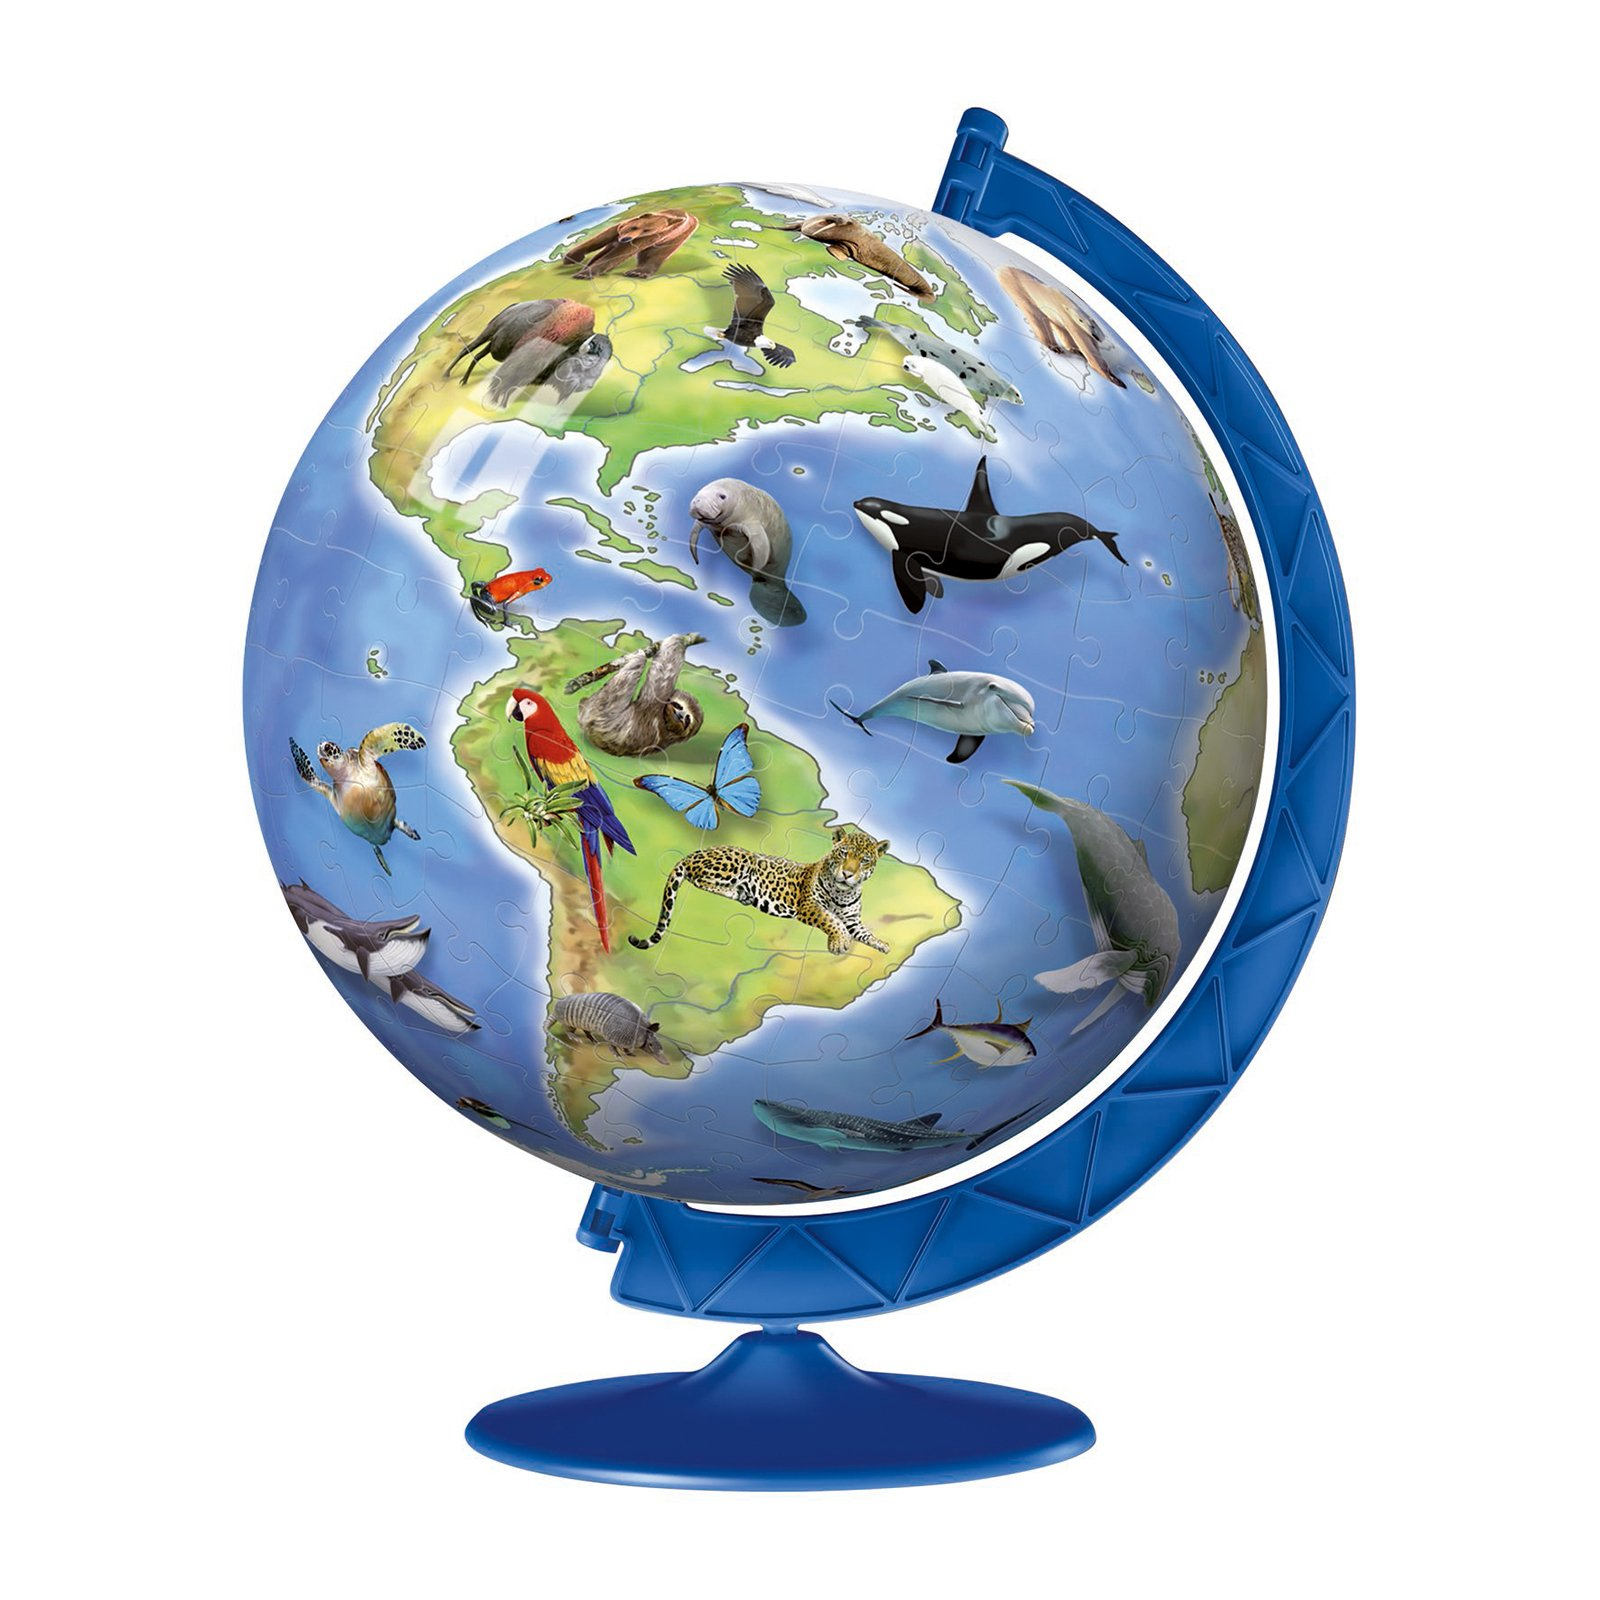 Pictures Of World Globes - ClipArt Best